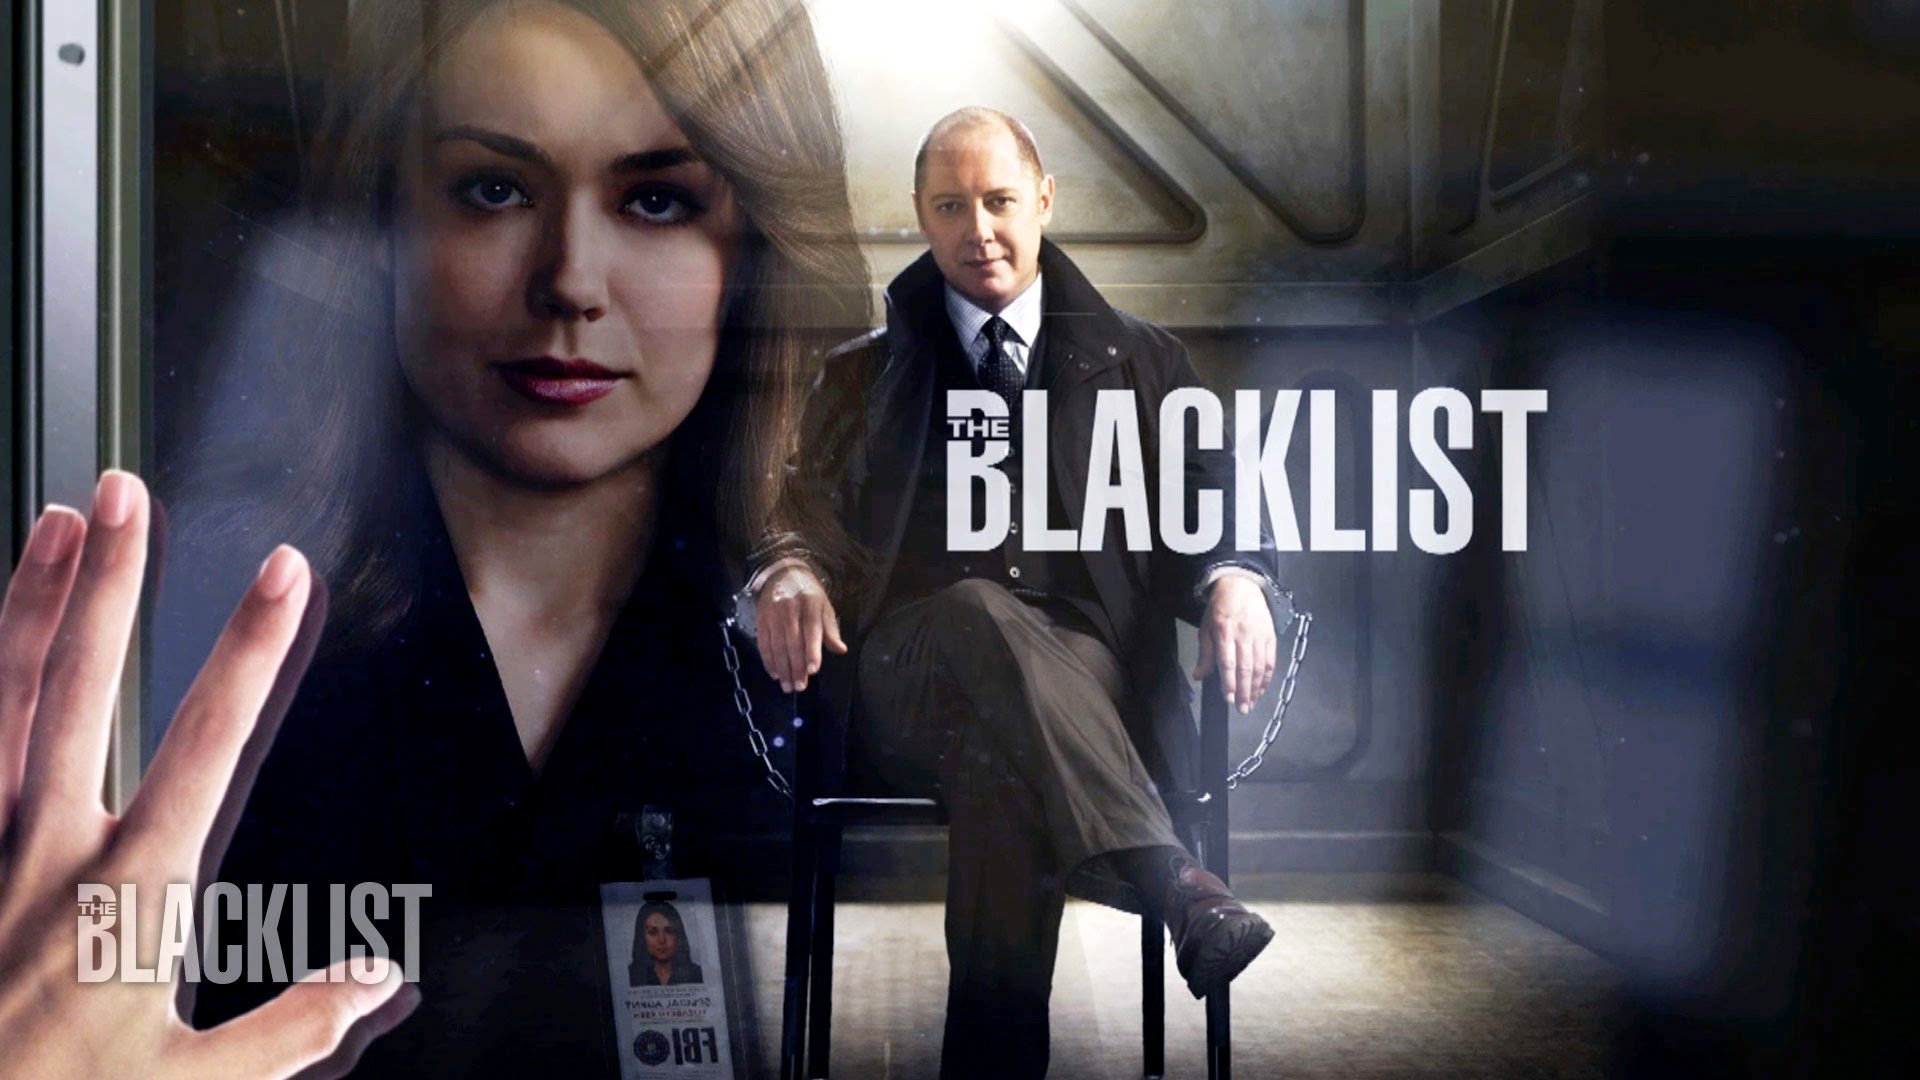 The Blacklist TV recommendation